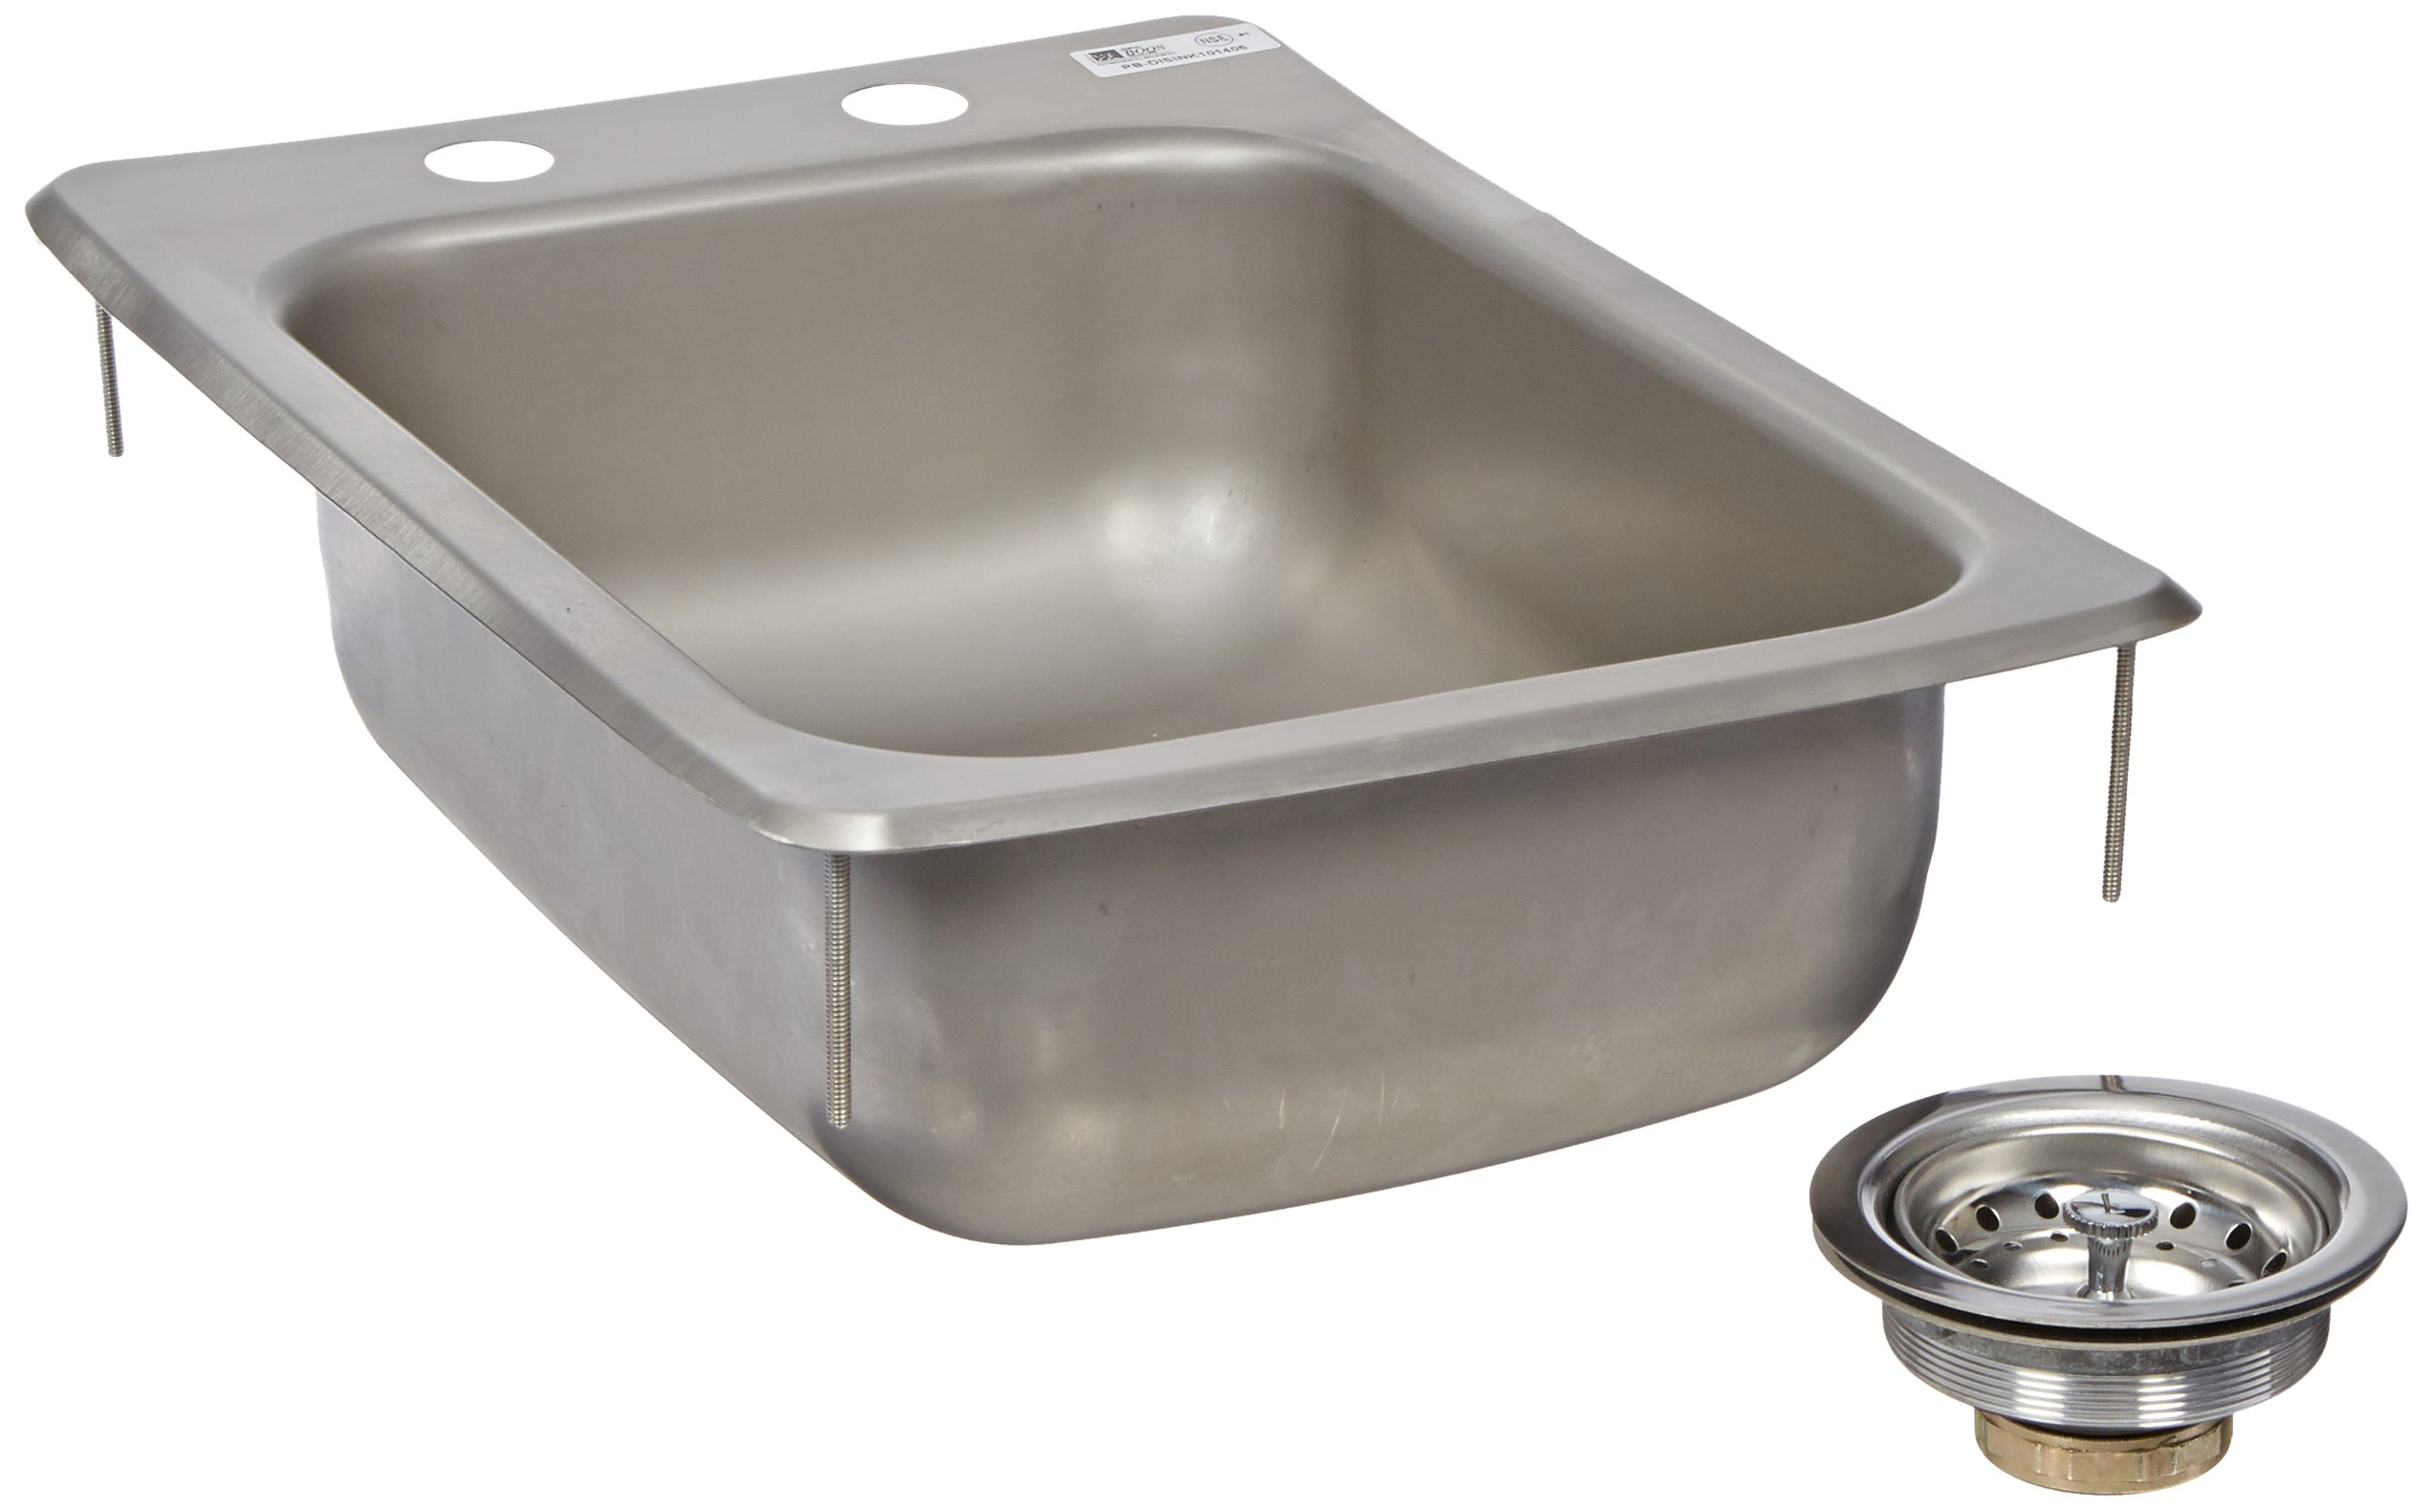 John Boos PB-DISINK101405 Deck Mount Pro-Bowl Drop-In Hand Sink, 14'' Length x 10'' Width x 5'' Depth by John Boos